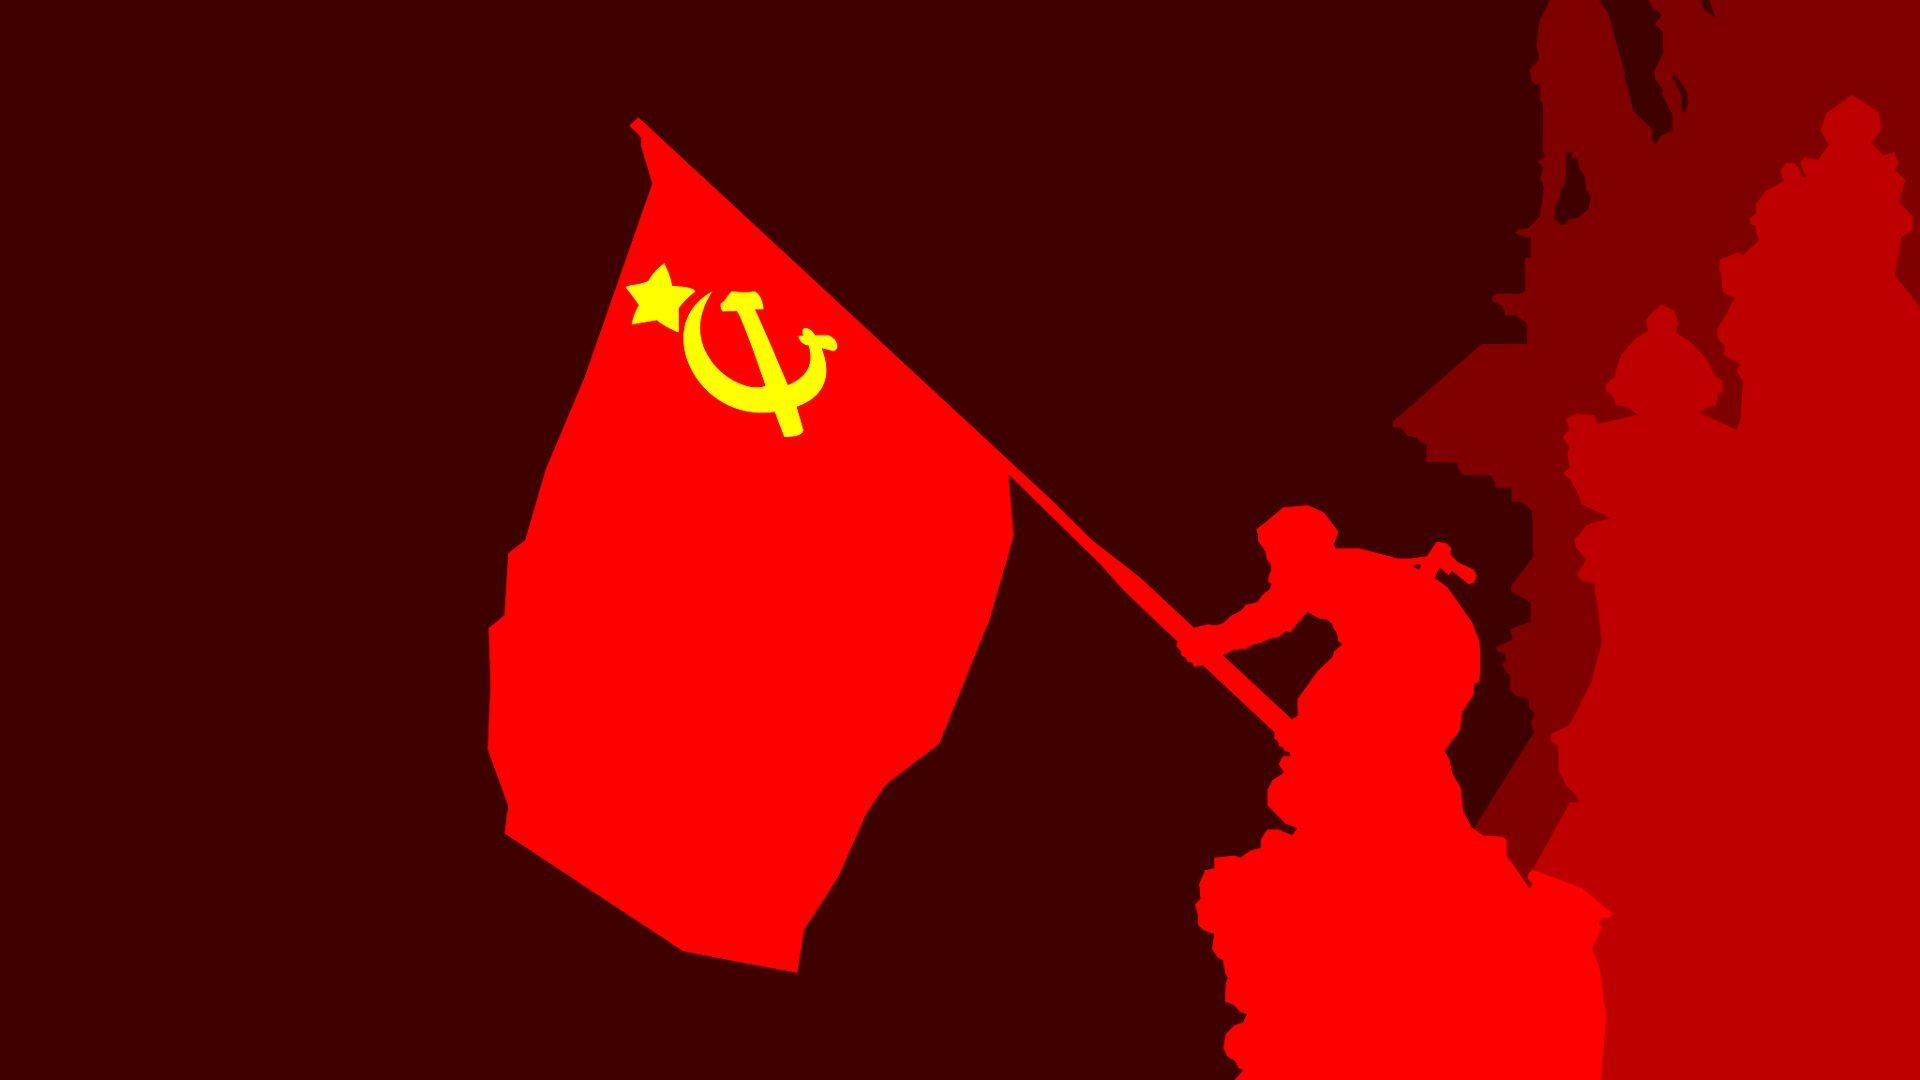 Communism Wallpapers - Wallpaper Cave